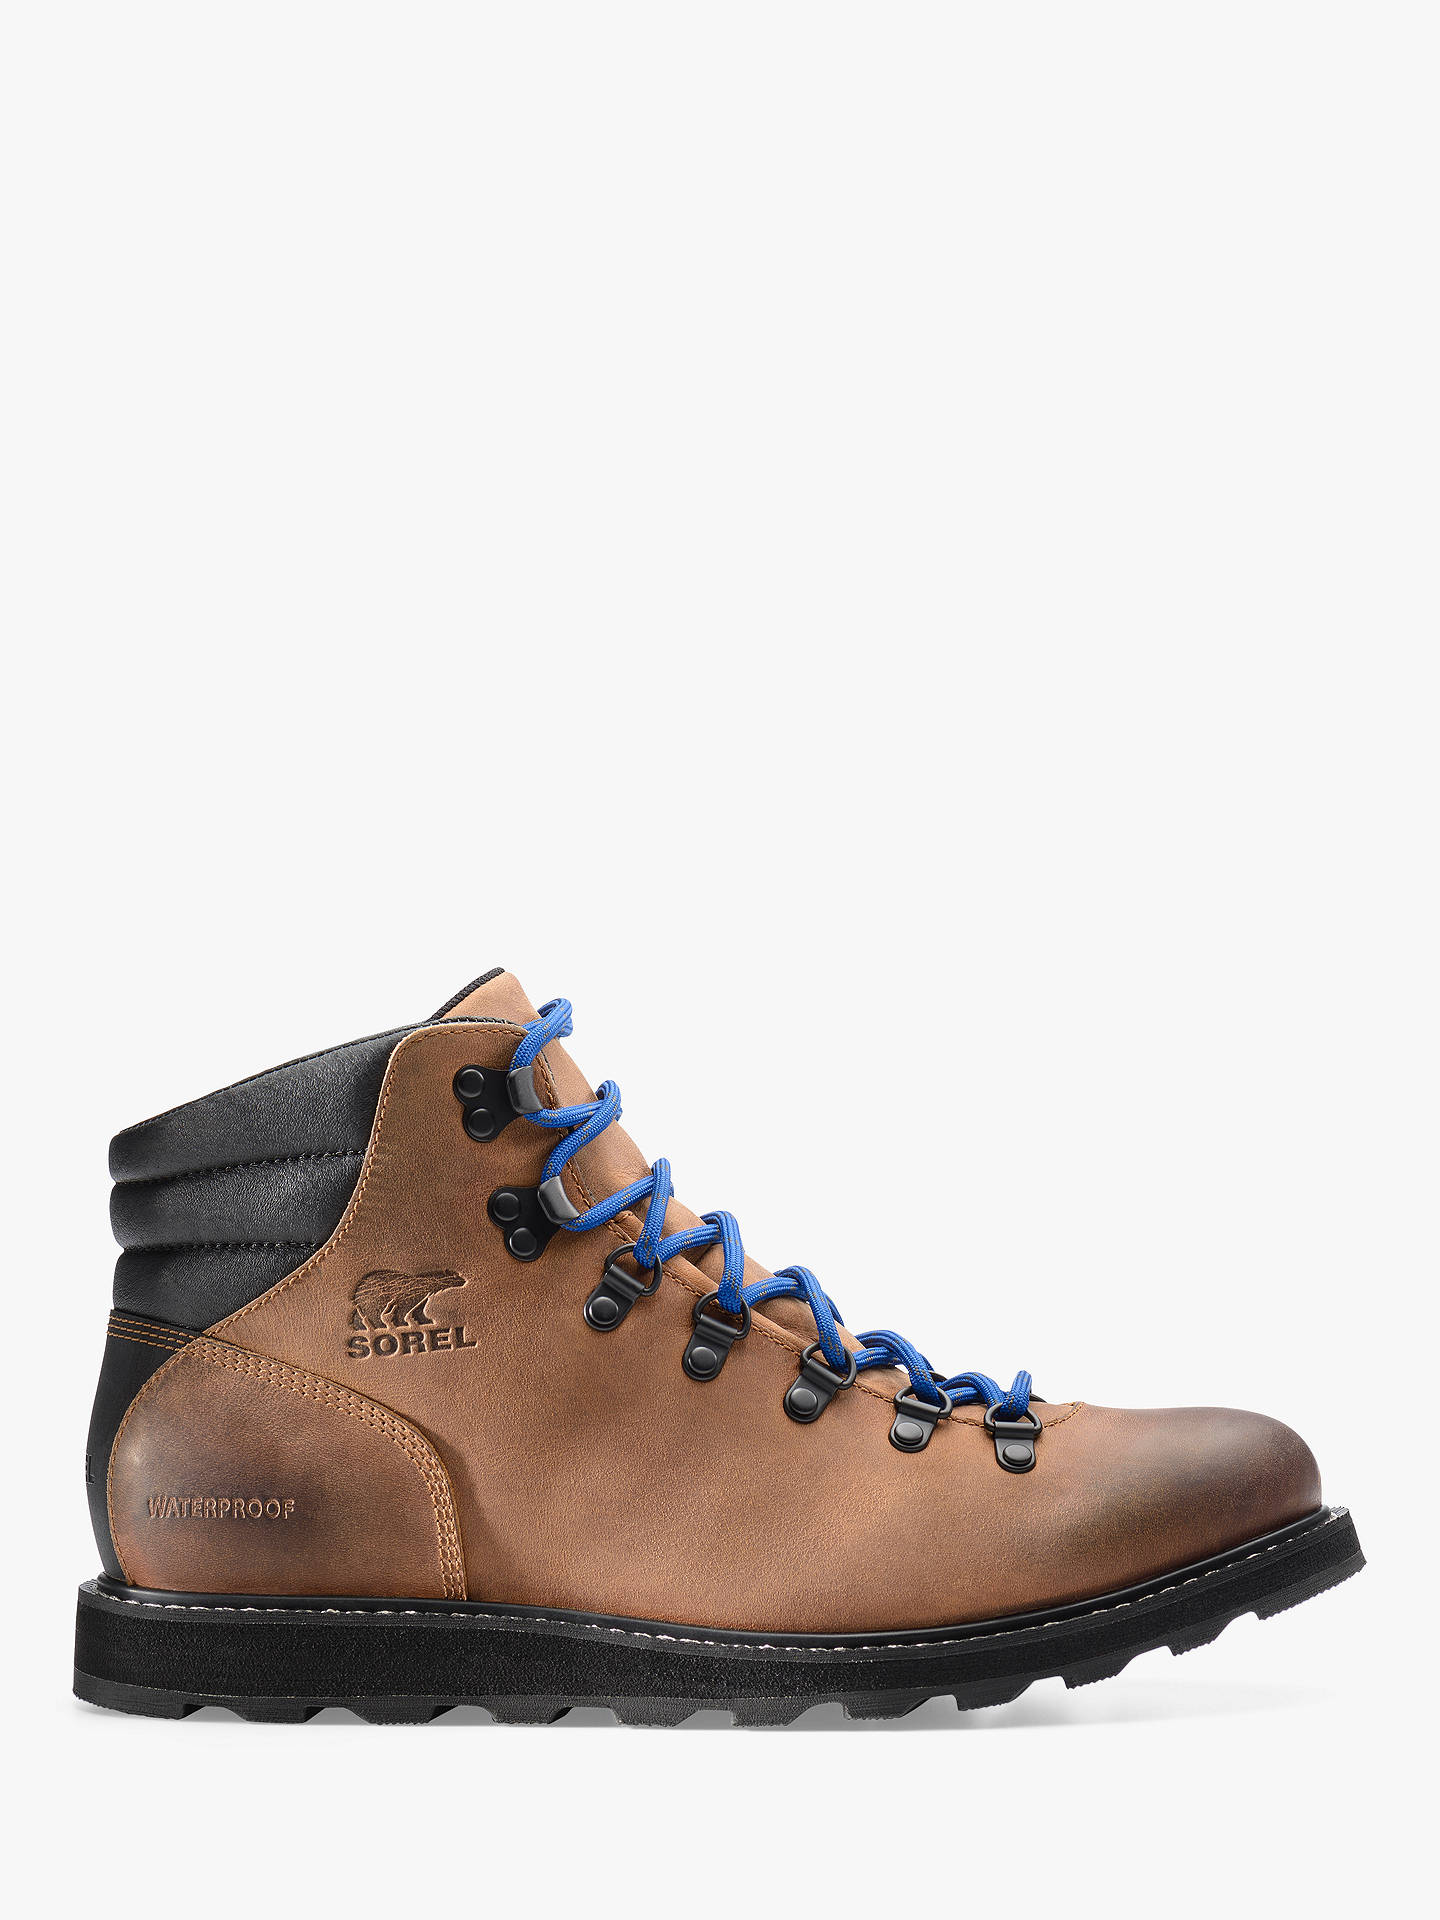 16ad772e9b5 SOREL Madson Waterproof Hiker Boots at John Lewis & Partners